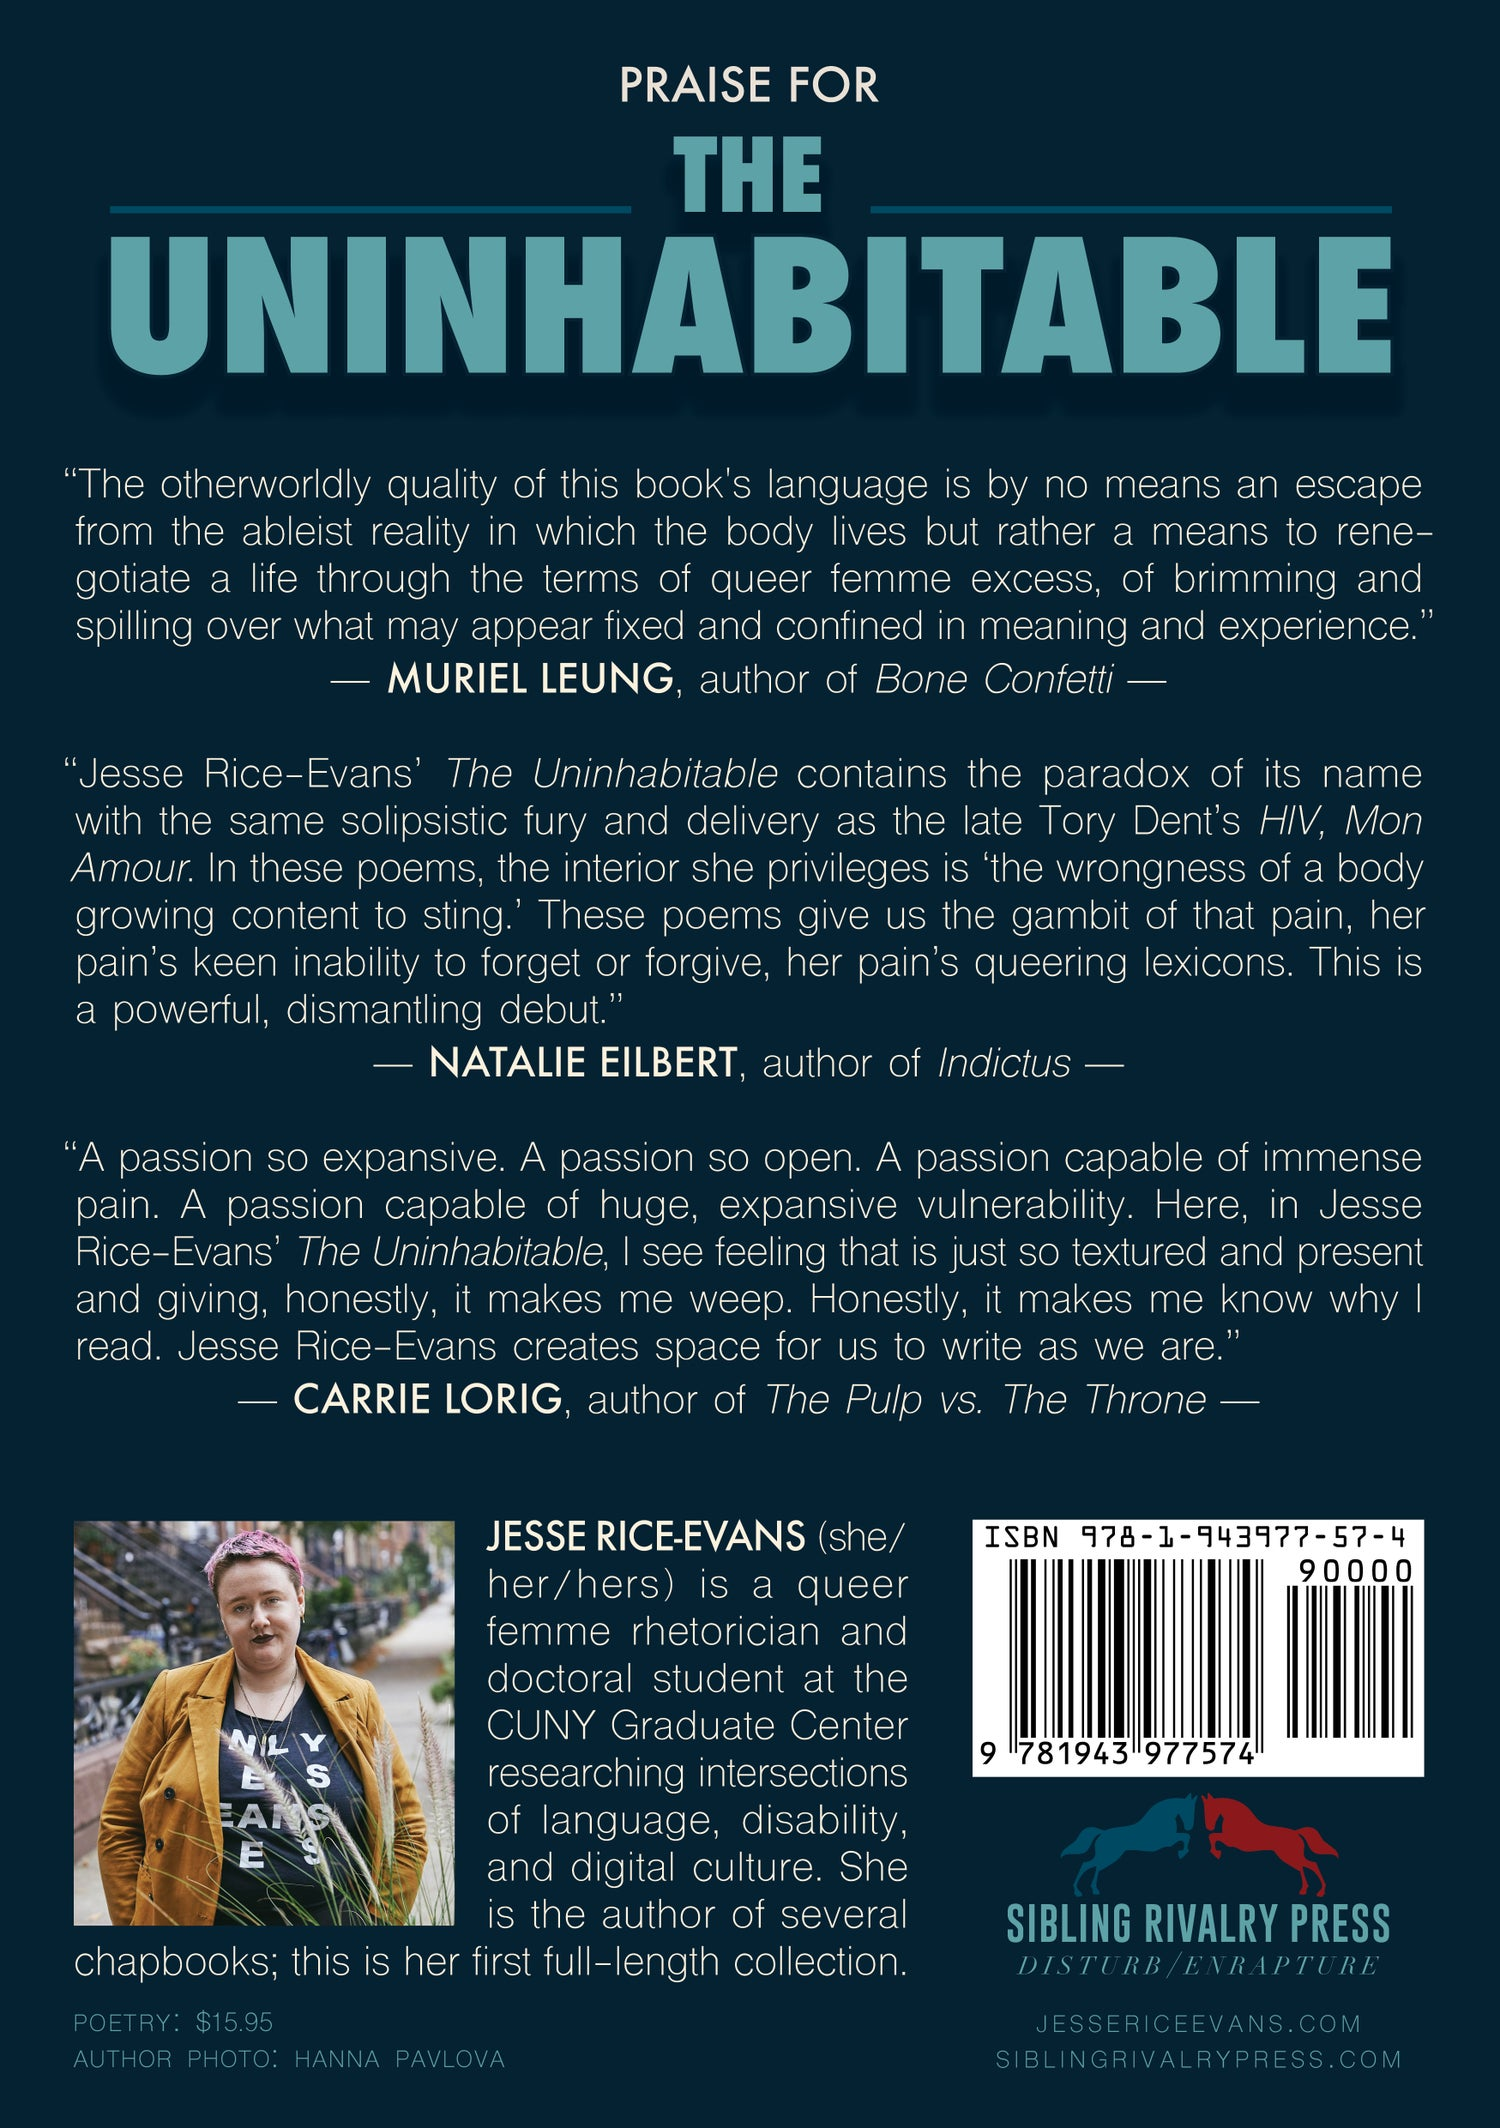 Image of The Uninhabitable by Jesse Rice-Evans